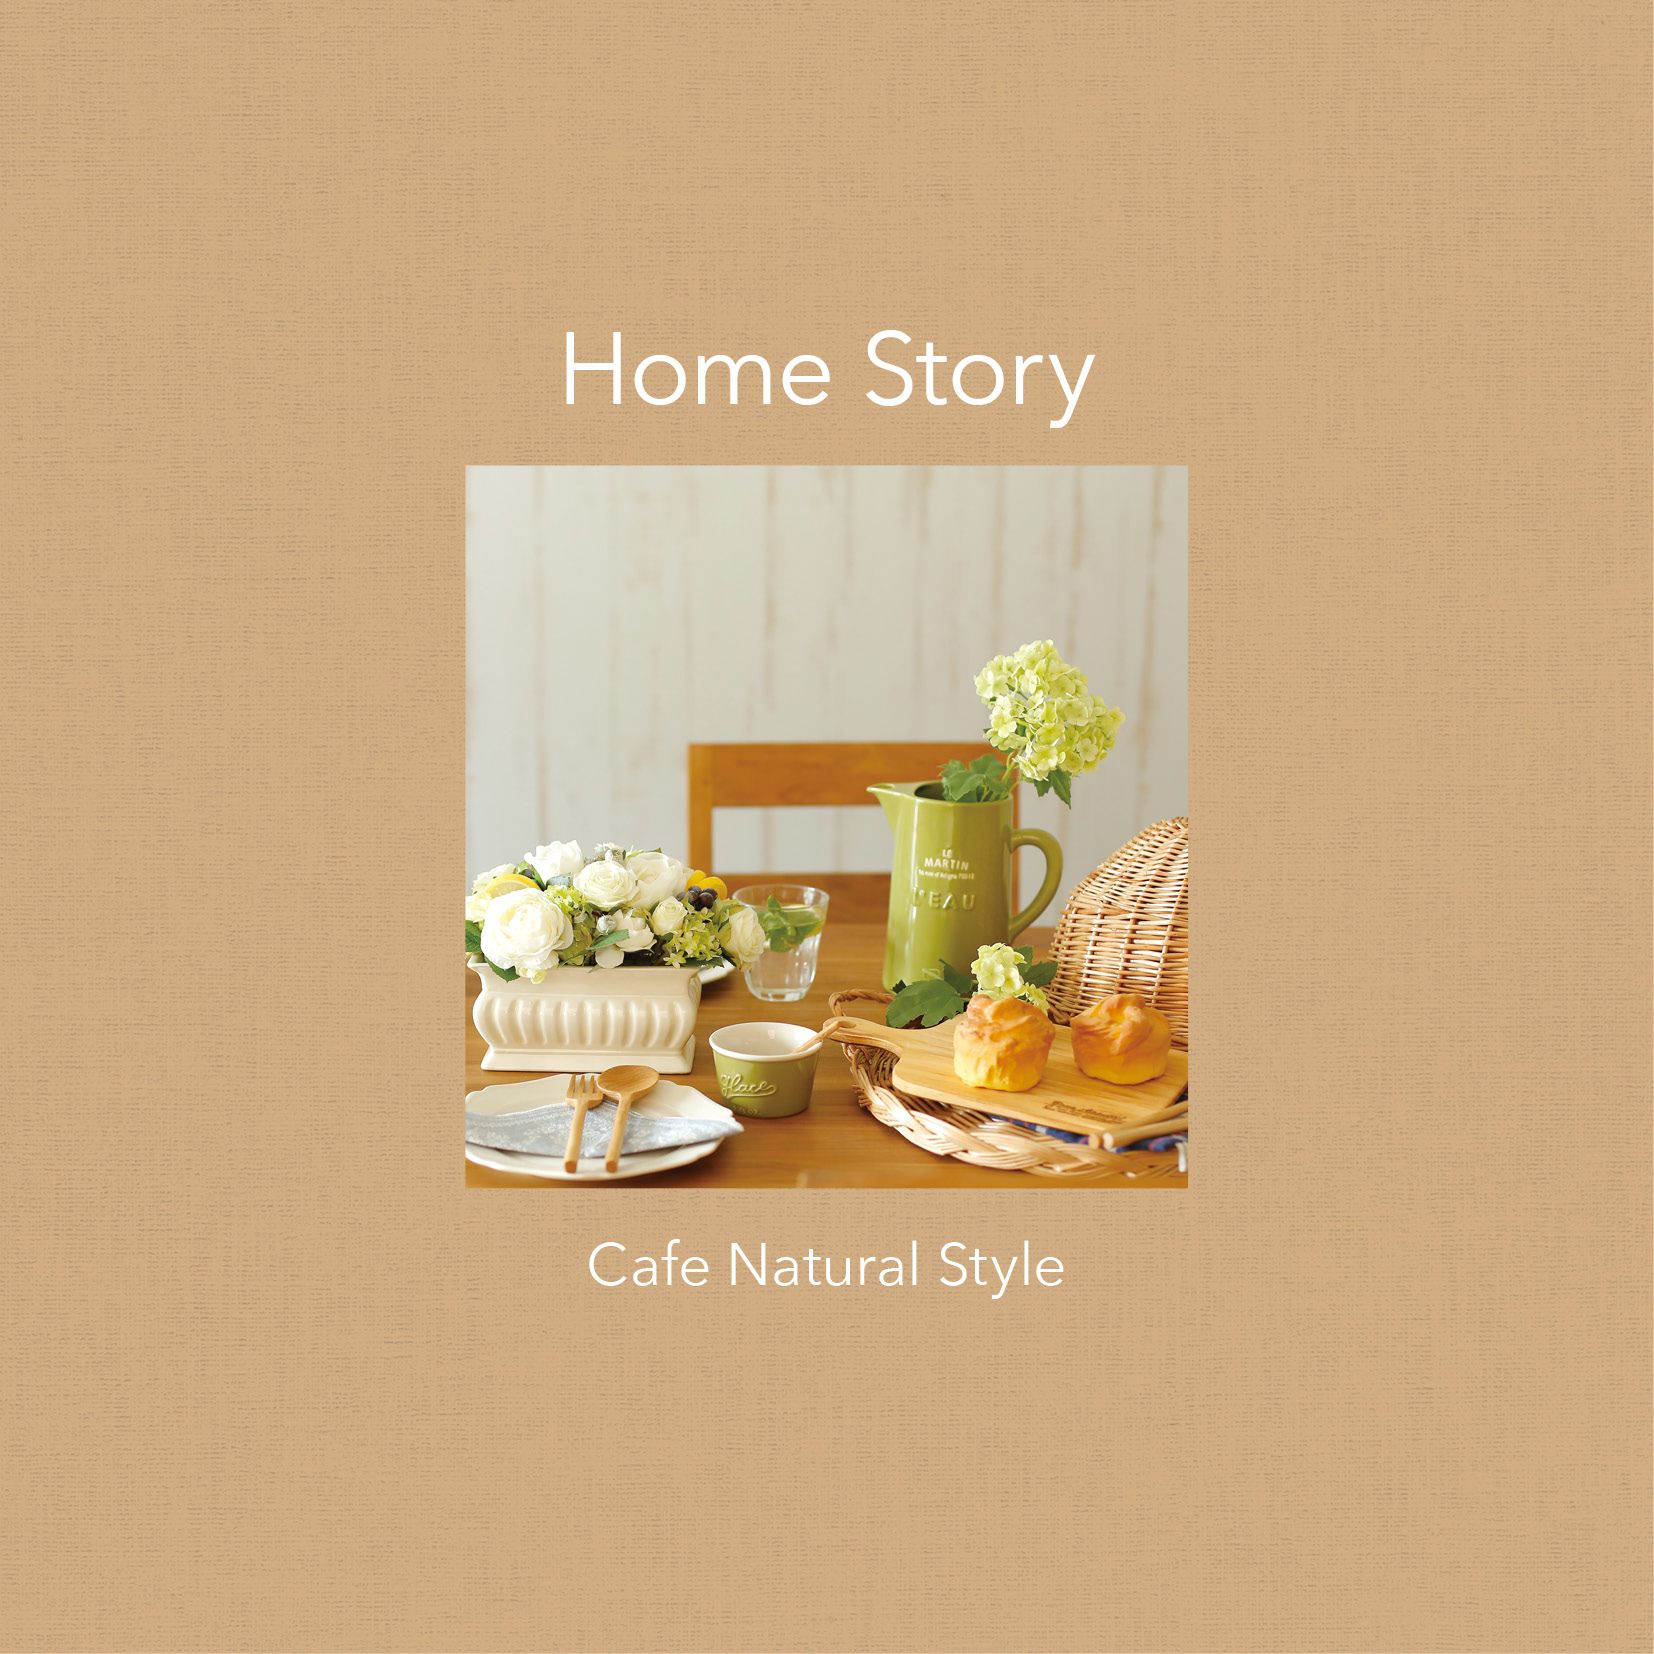 Cafe Natural Style